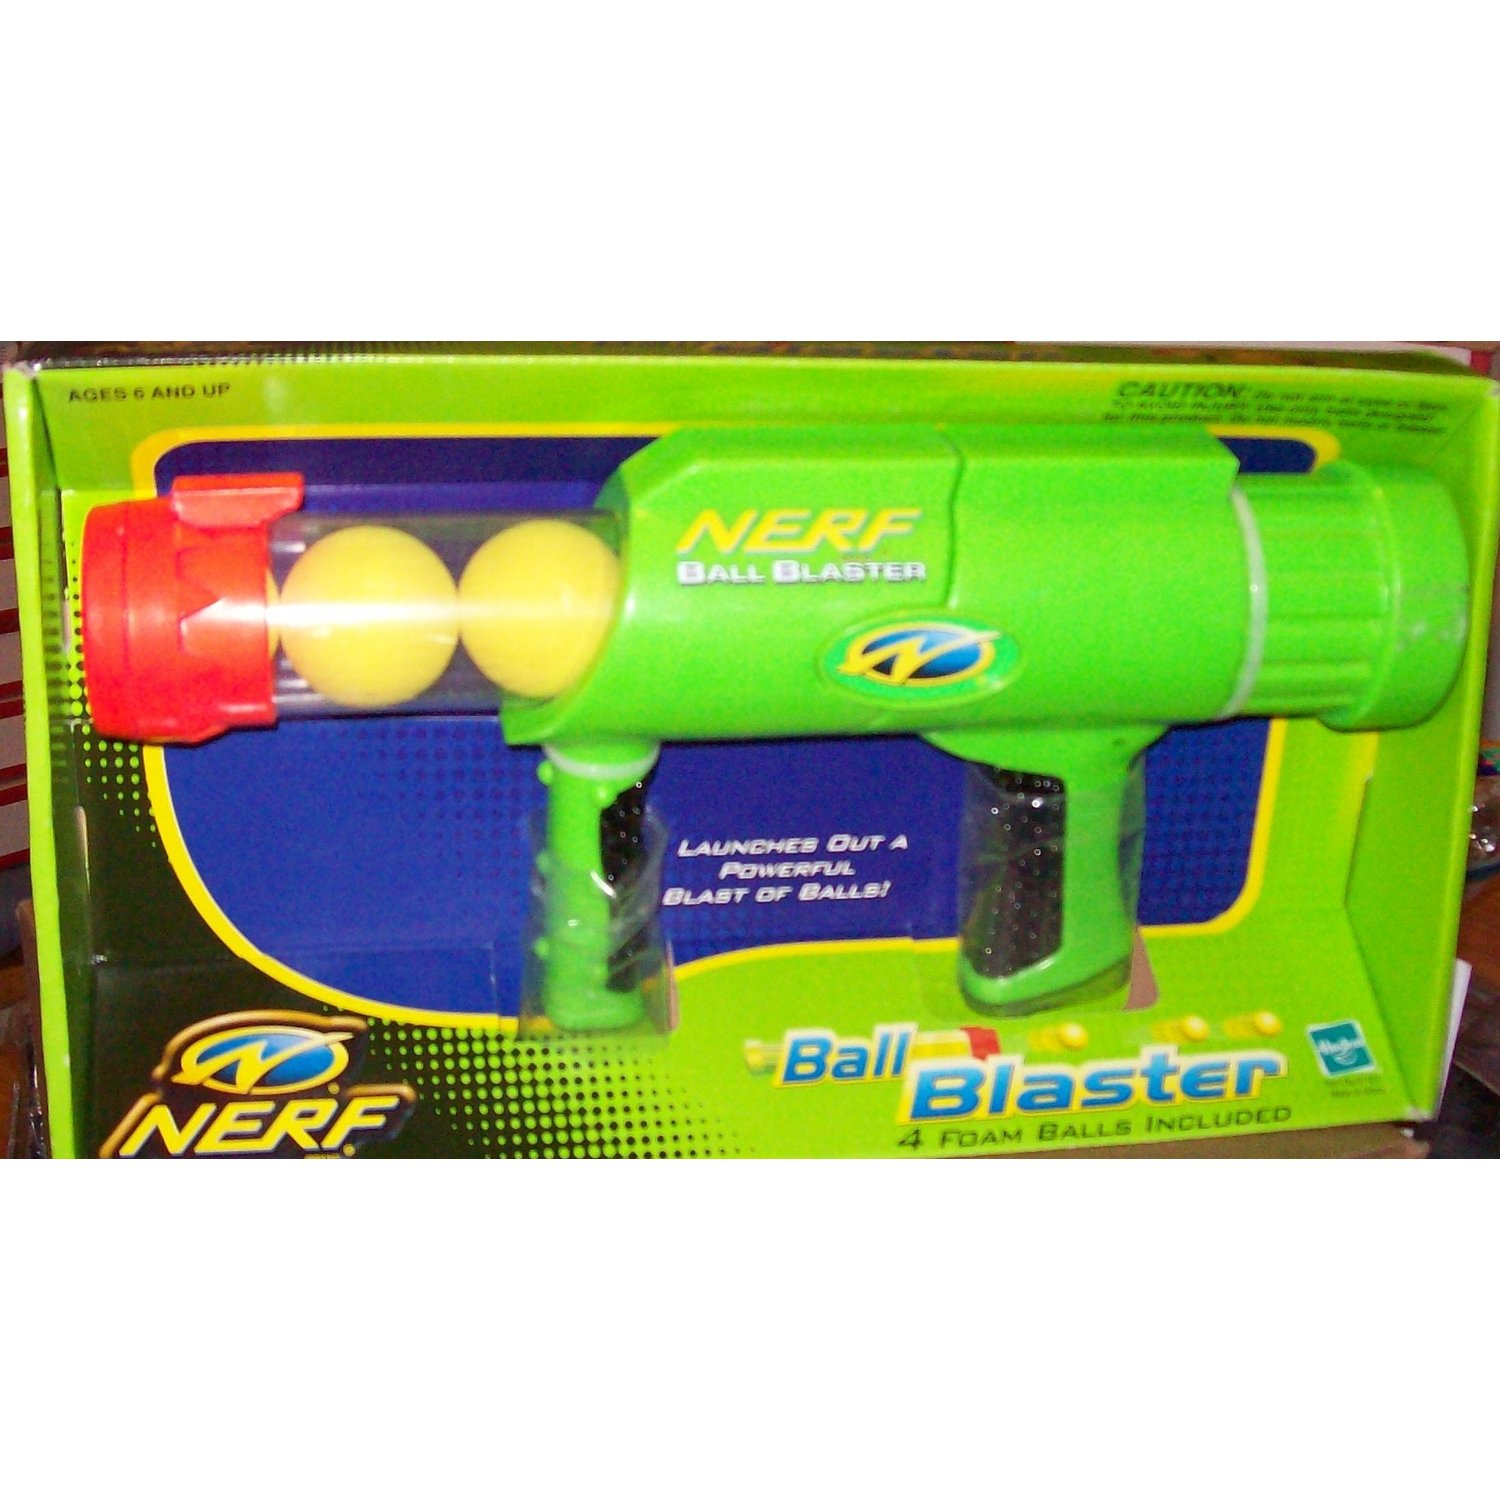 Ball Blaster (Nerf) | Nerf Wiki | FANDOM powered by Wikia